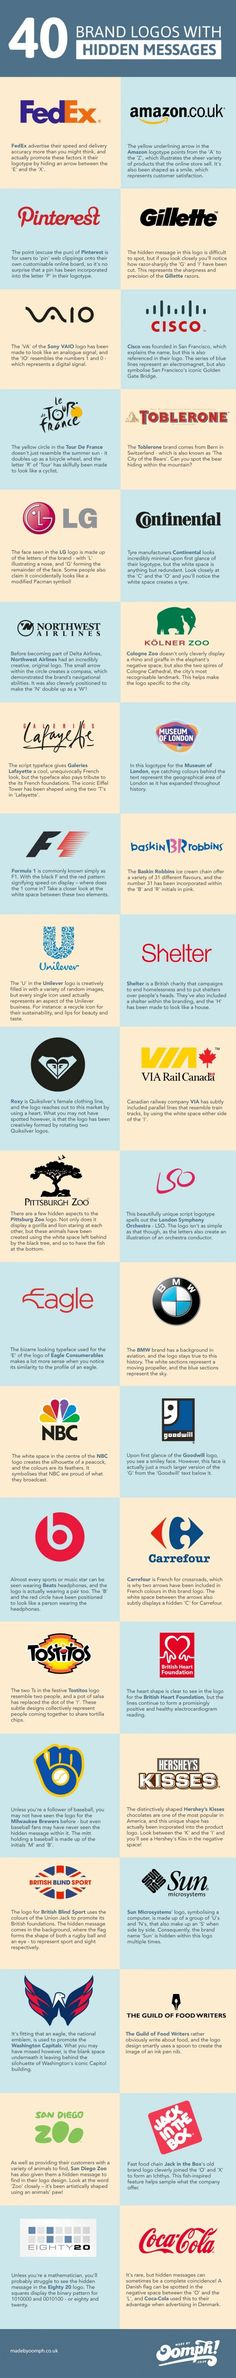 40 Logos With Hidden Messages and good uses of Negative Space. This infographic is a great resource for inspiration of creative logos with hidden messages Web Design, Logo Design, Branding Design, Lettering, Typography, Clever Logo, Creative Logo, Creative People, Creative Art